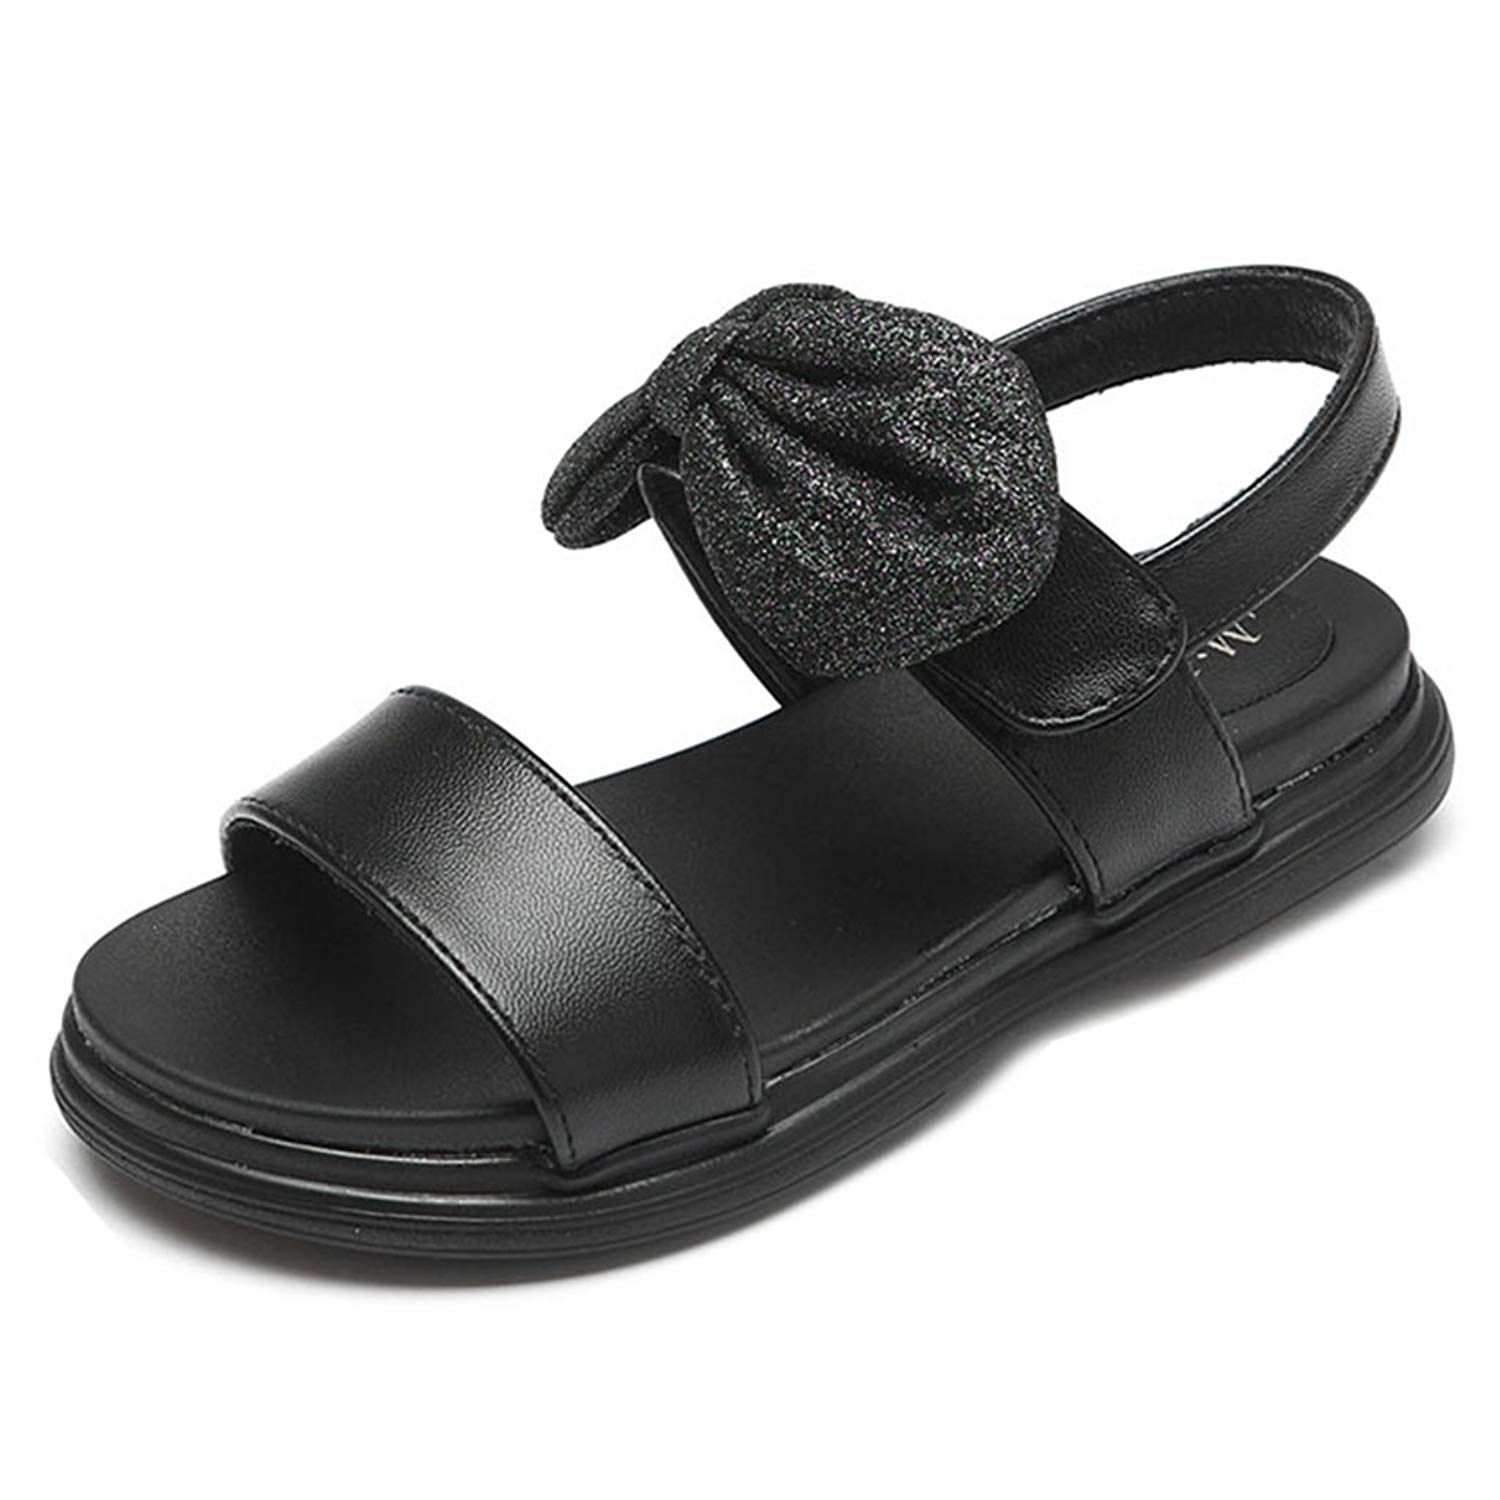 Girl's Summer Open Toe Bowknot Sandals Classic Summer Outdoor Slip On Ankle Strap Flat Sandal Shoes